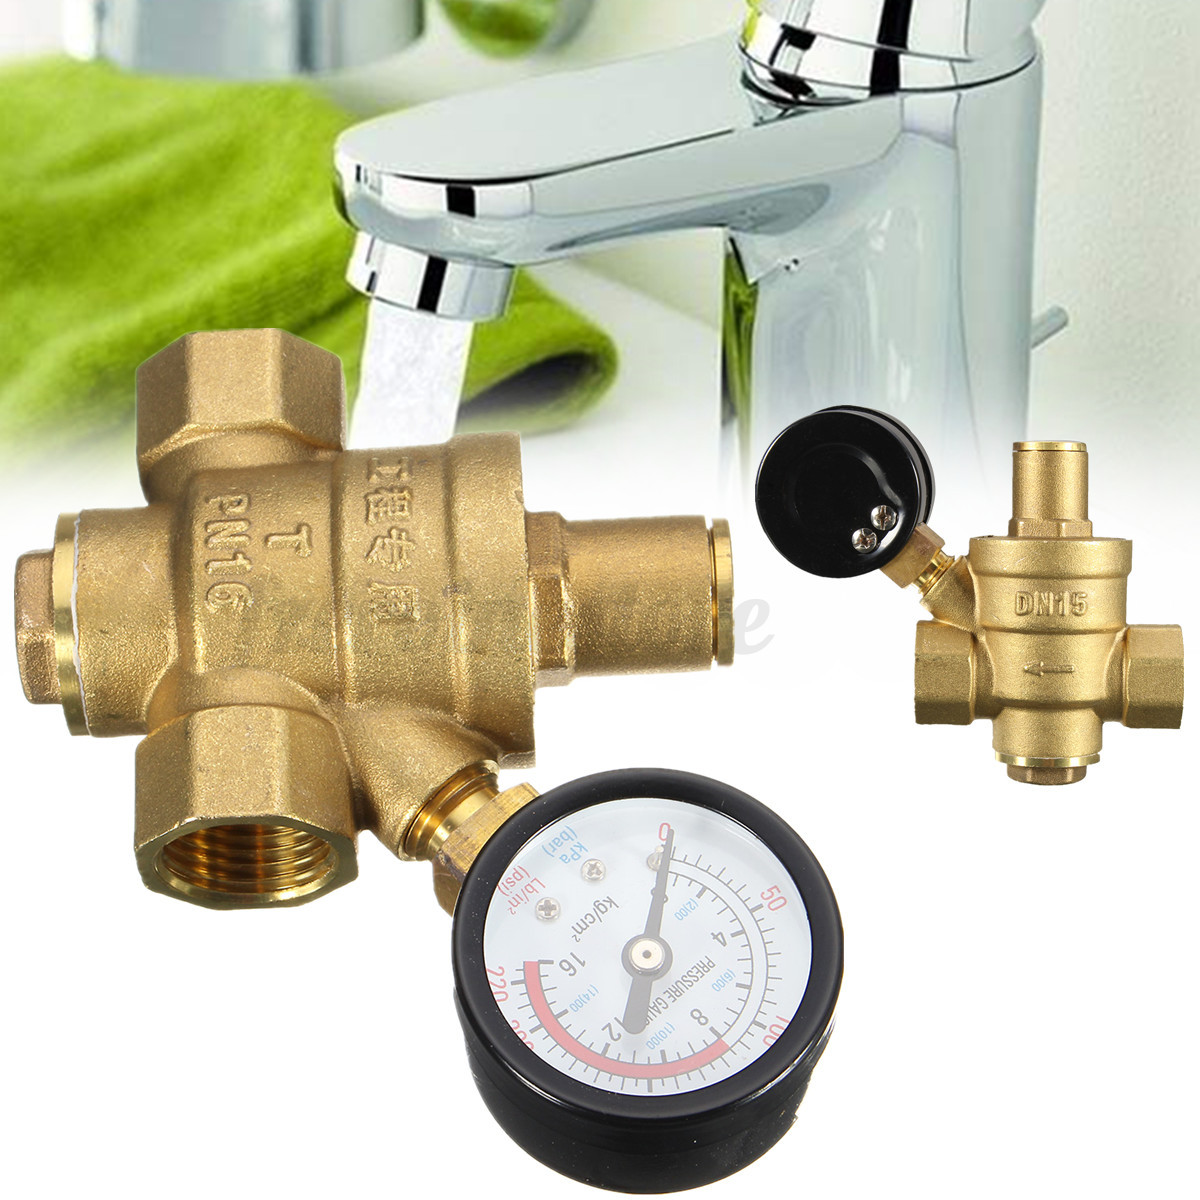 dn20 npt 39 39 adjustable brass water pressure regulator reducer with gauge meter ebay. Black Bedroom Furniture Sets. Home Design Ideas